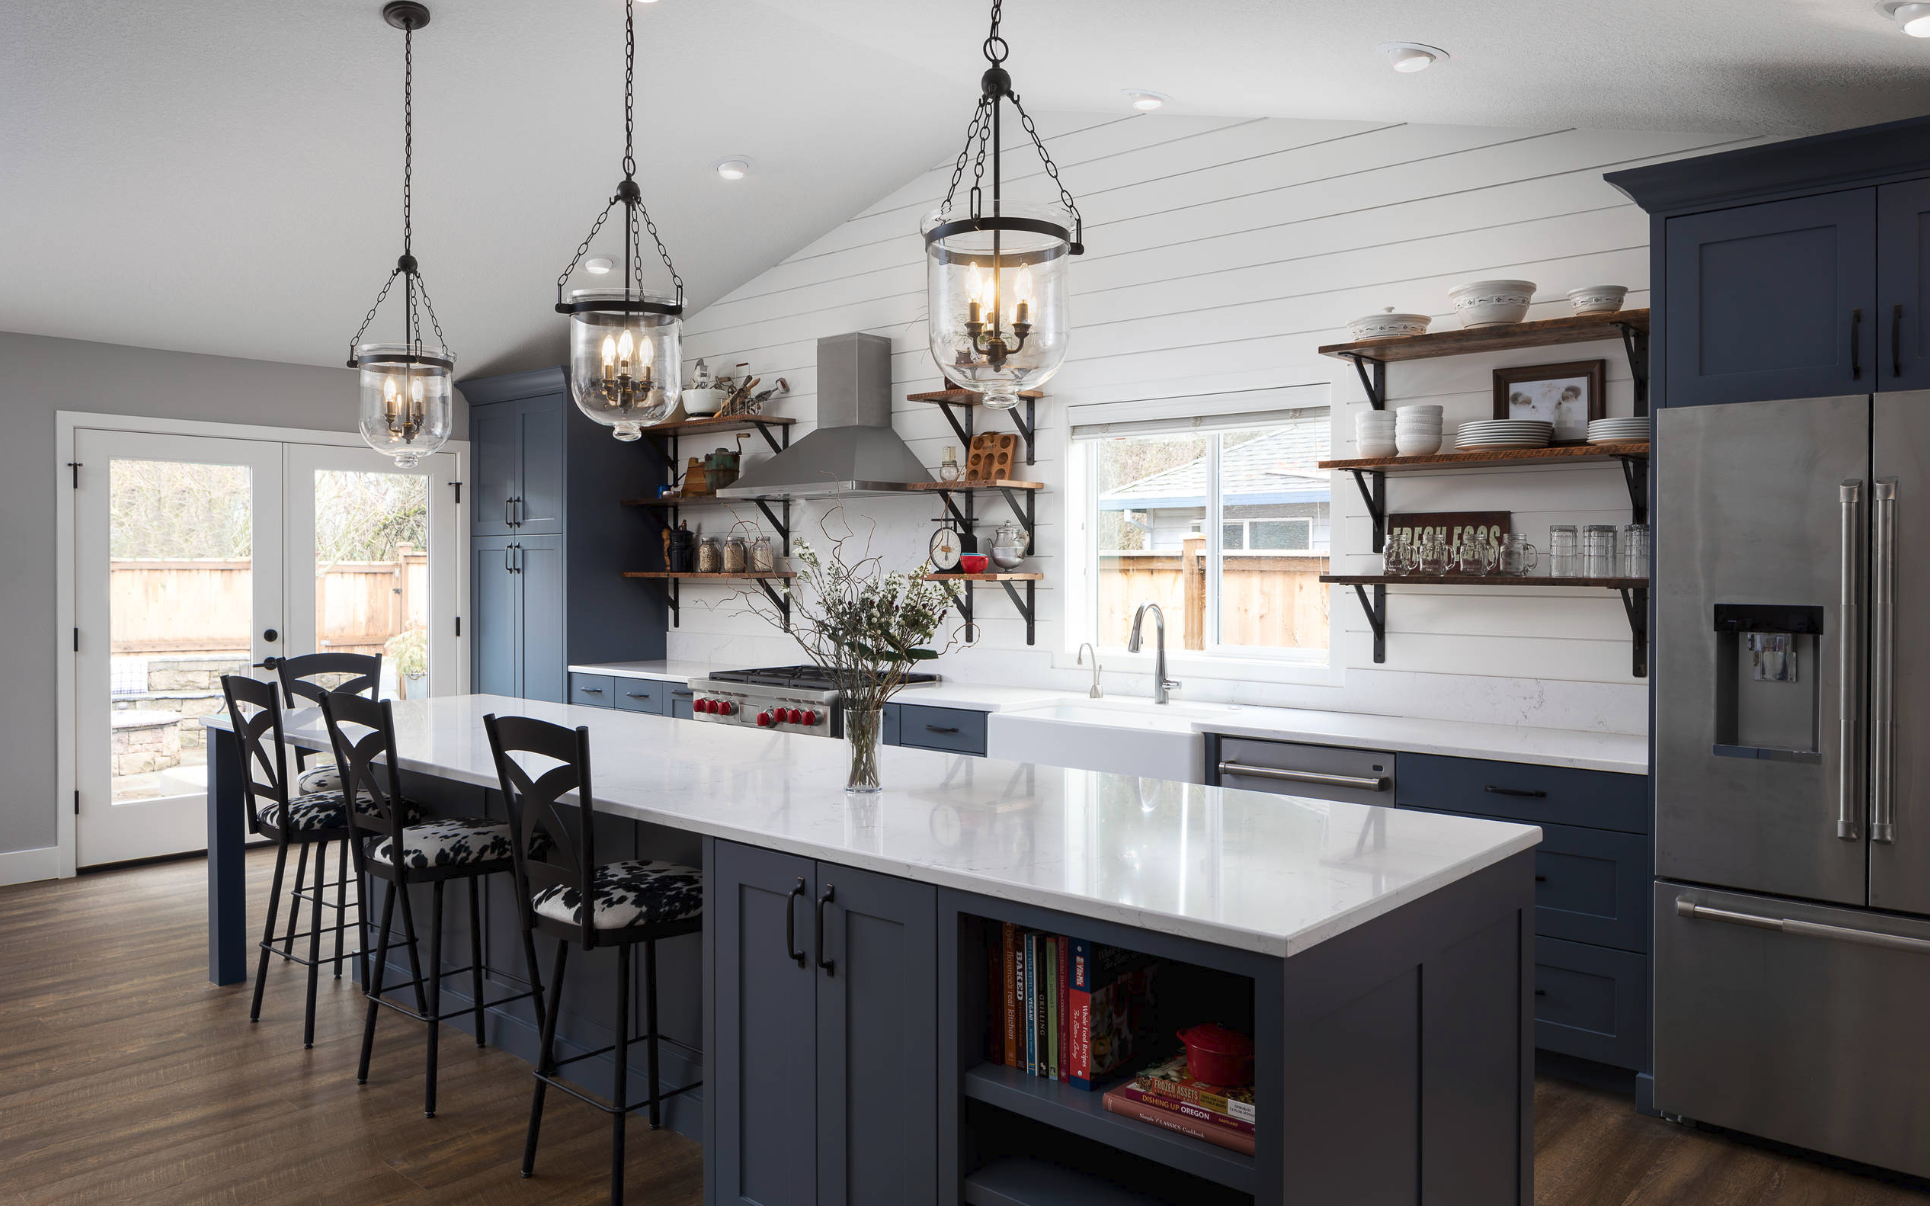 Here Are 15 Modern Farmhouse Kitchen Ideas to Inspire You